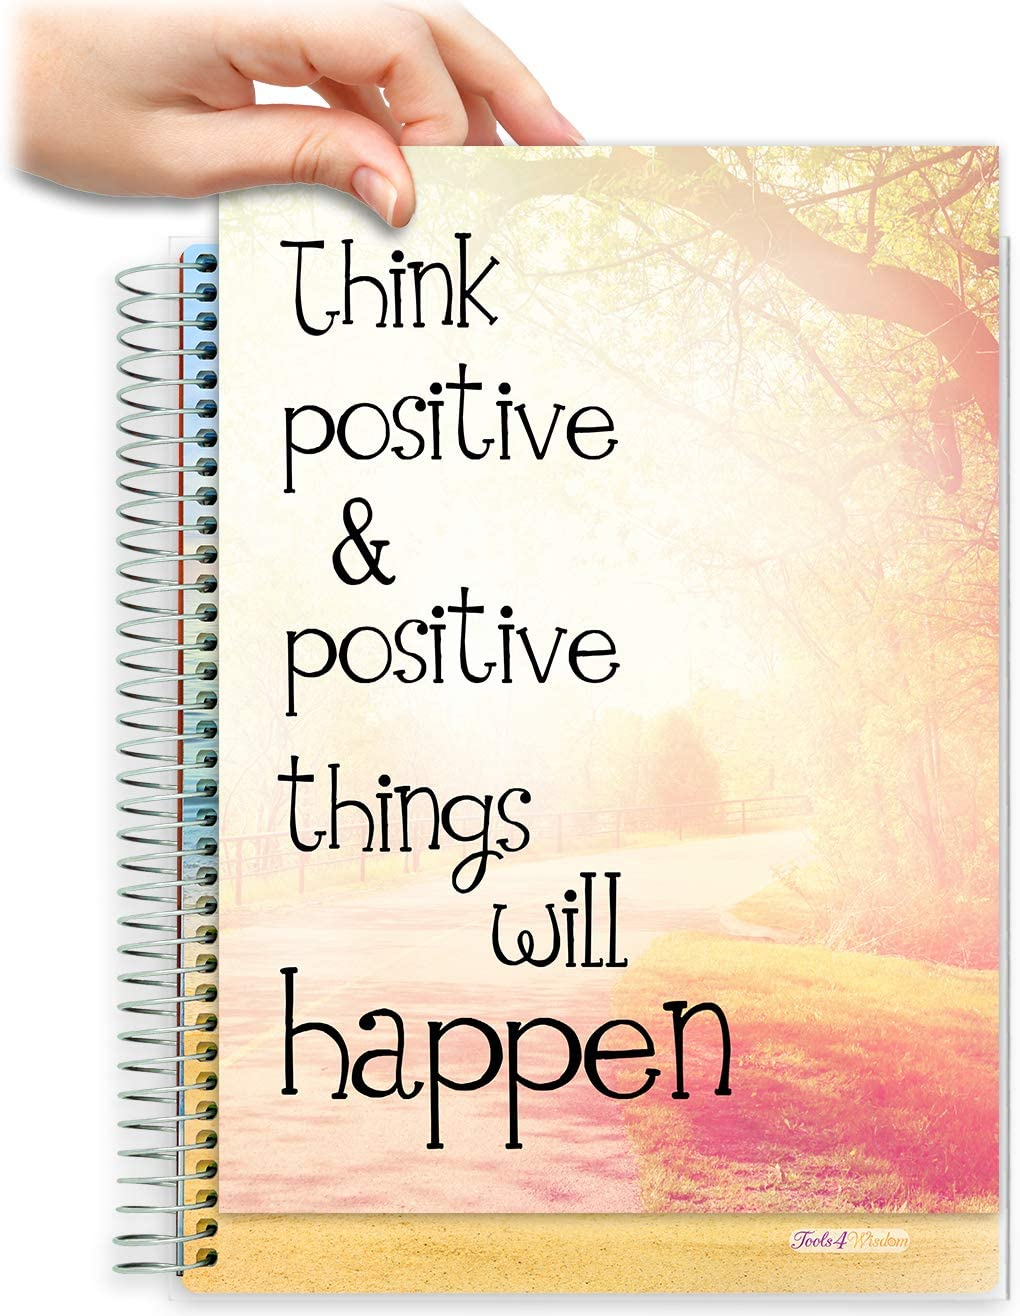 8.5x11 Customizable Softcover Planner • April 2021 to June 2022 Academic Year • Think Positive